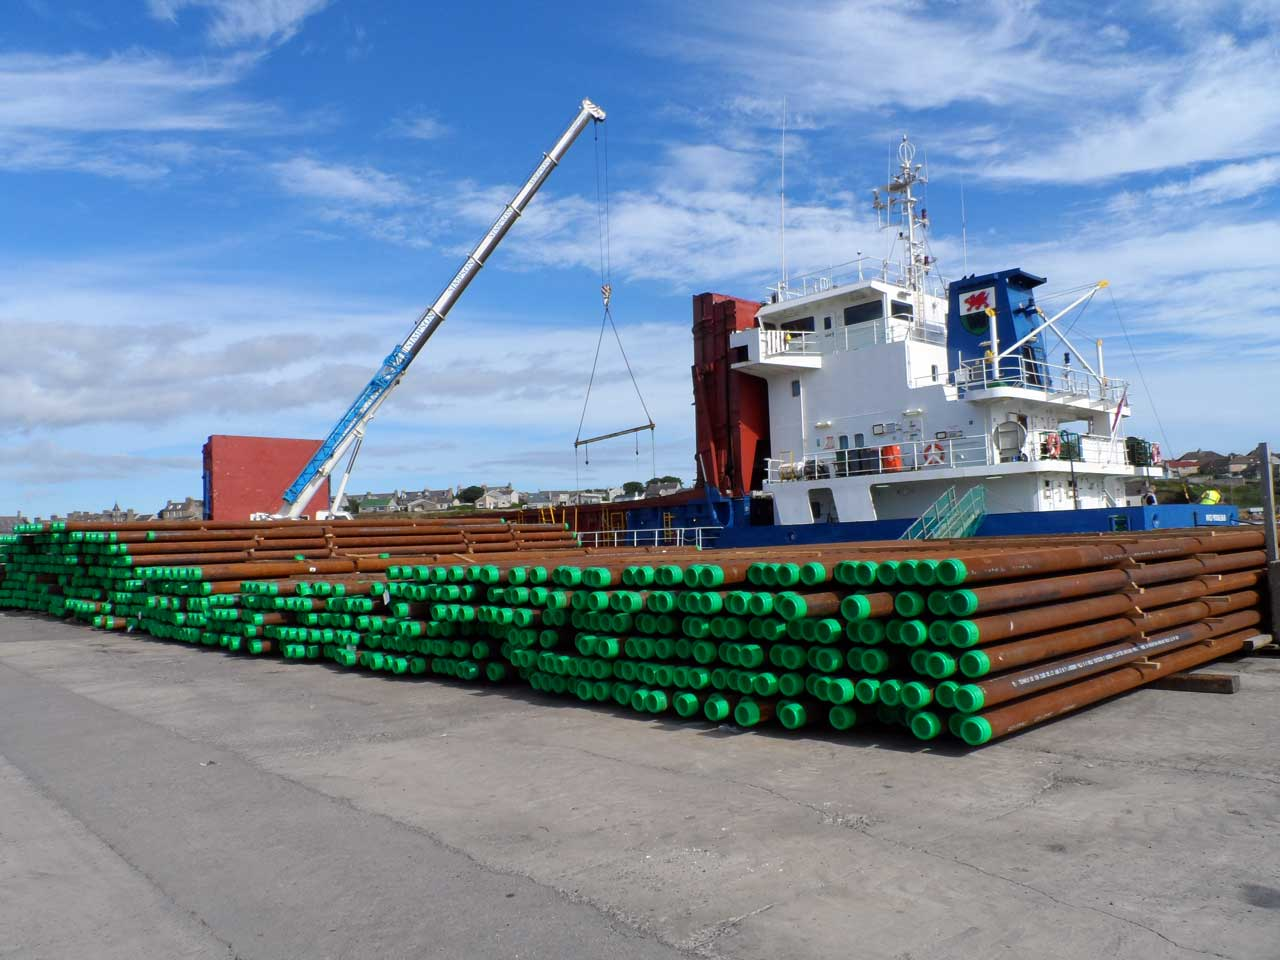 Photo: Pipes Bound For Wester Delivered By Celtic Crusader